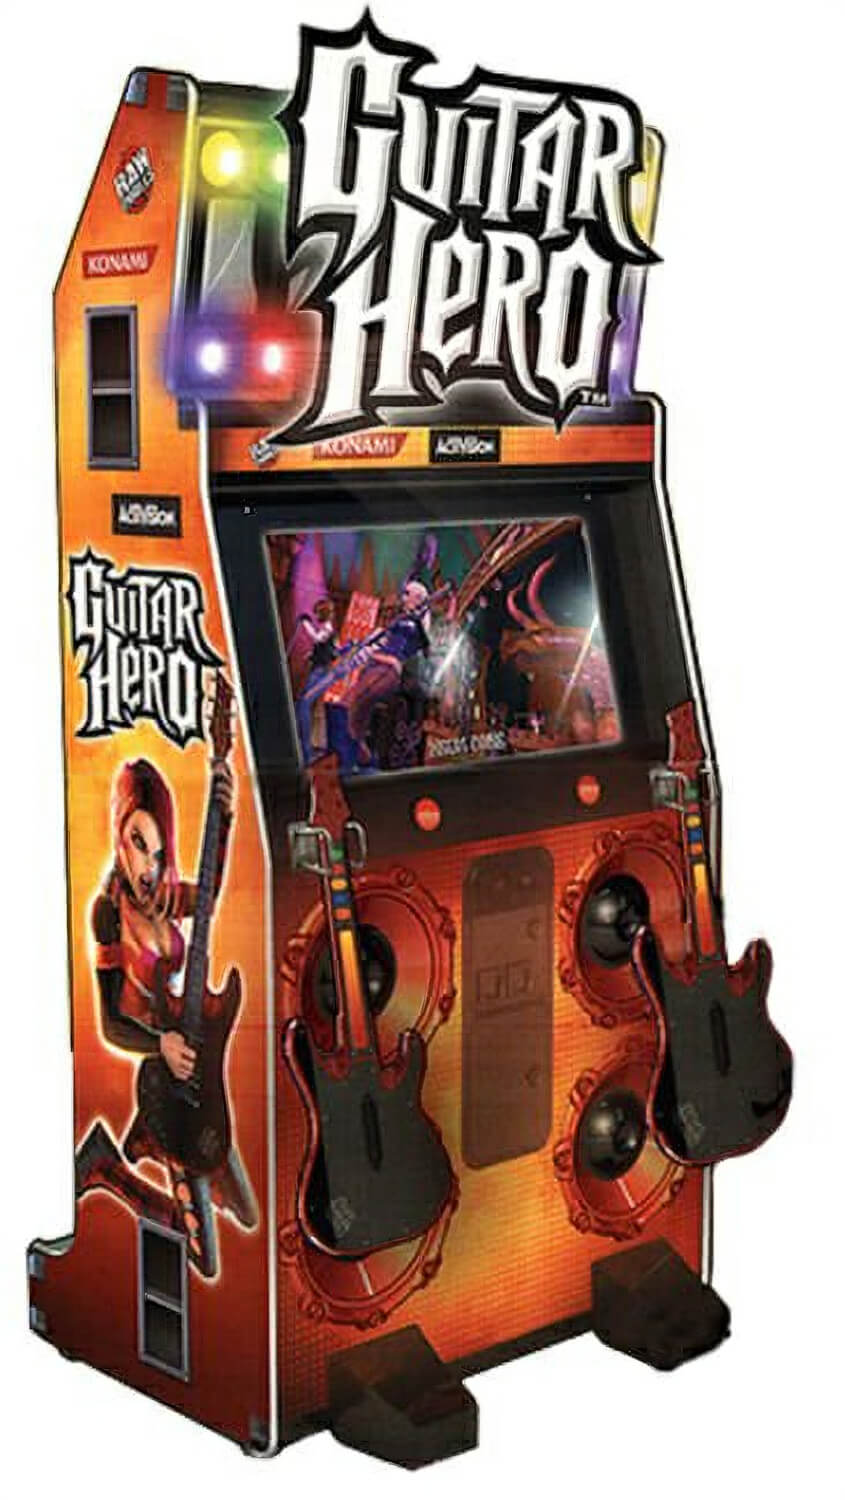 konami guitar hero arcade machine liberty games. Black Bedroom Furniture Sets. Home Design Ideas